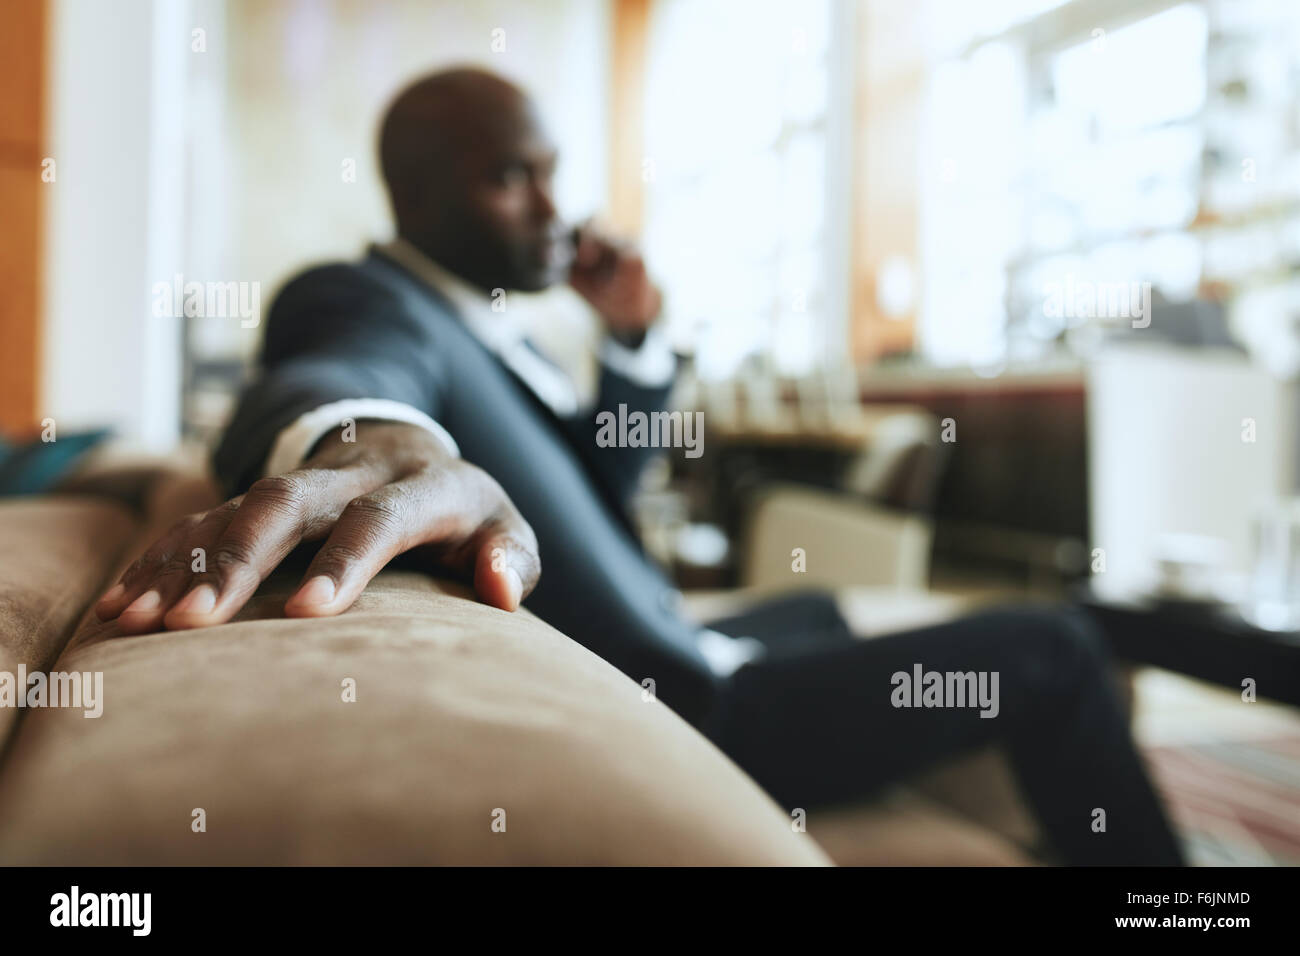 African businessman sitting in lounge area at hotel reception talking on mobile phone, focus on hand. - Stock Image